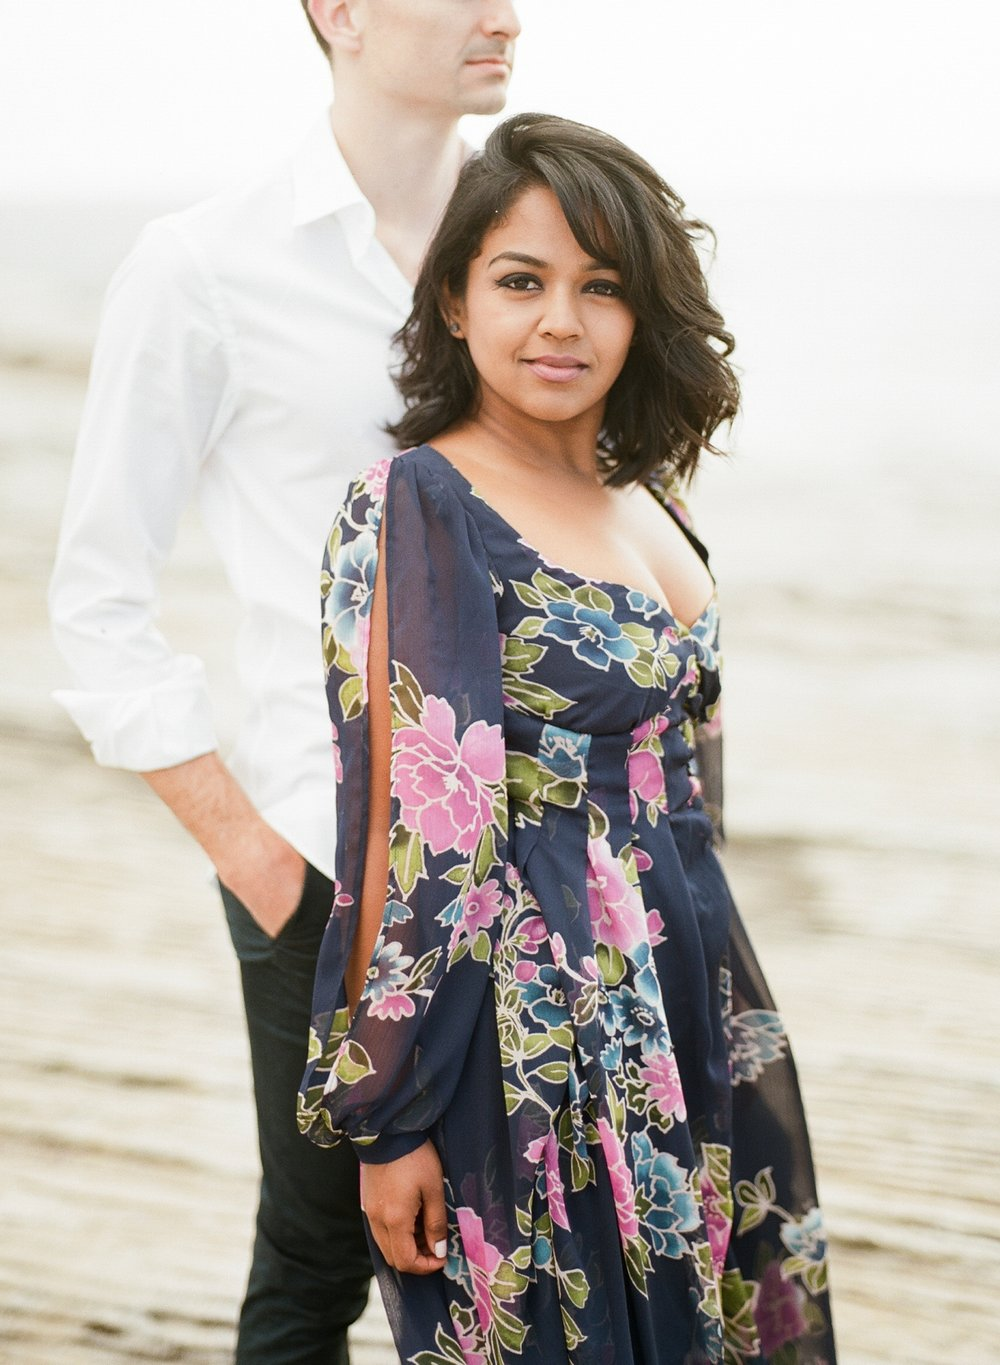 Coastal Sydney couples session by Mr Edwards Photography_0737_1125.jpg